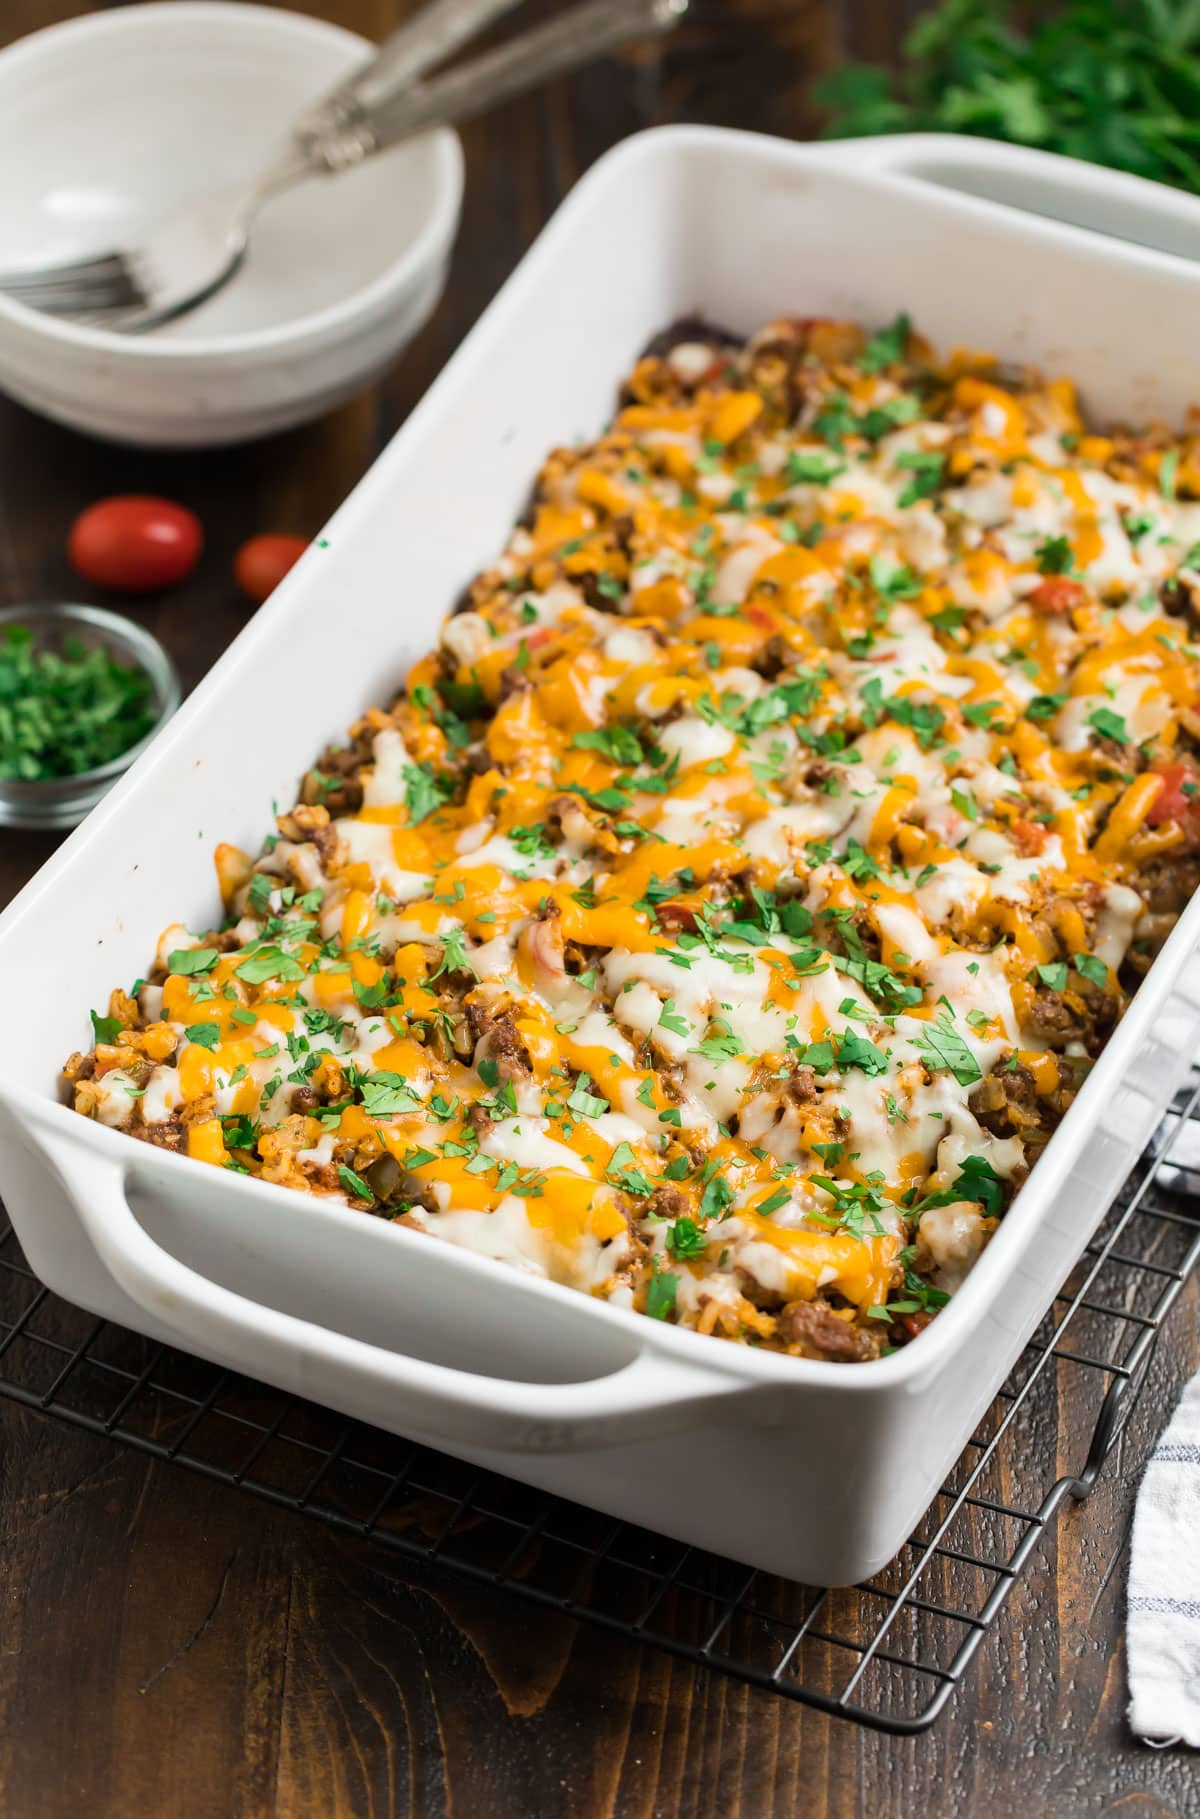 A baking dish with Mexican casserole